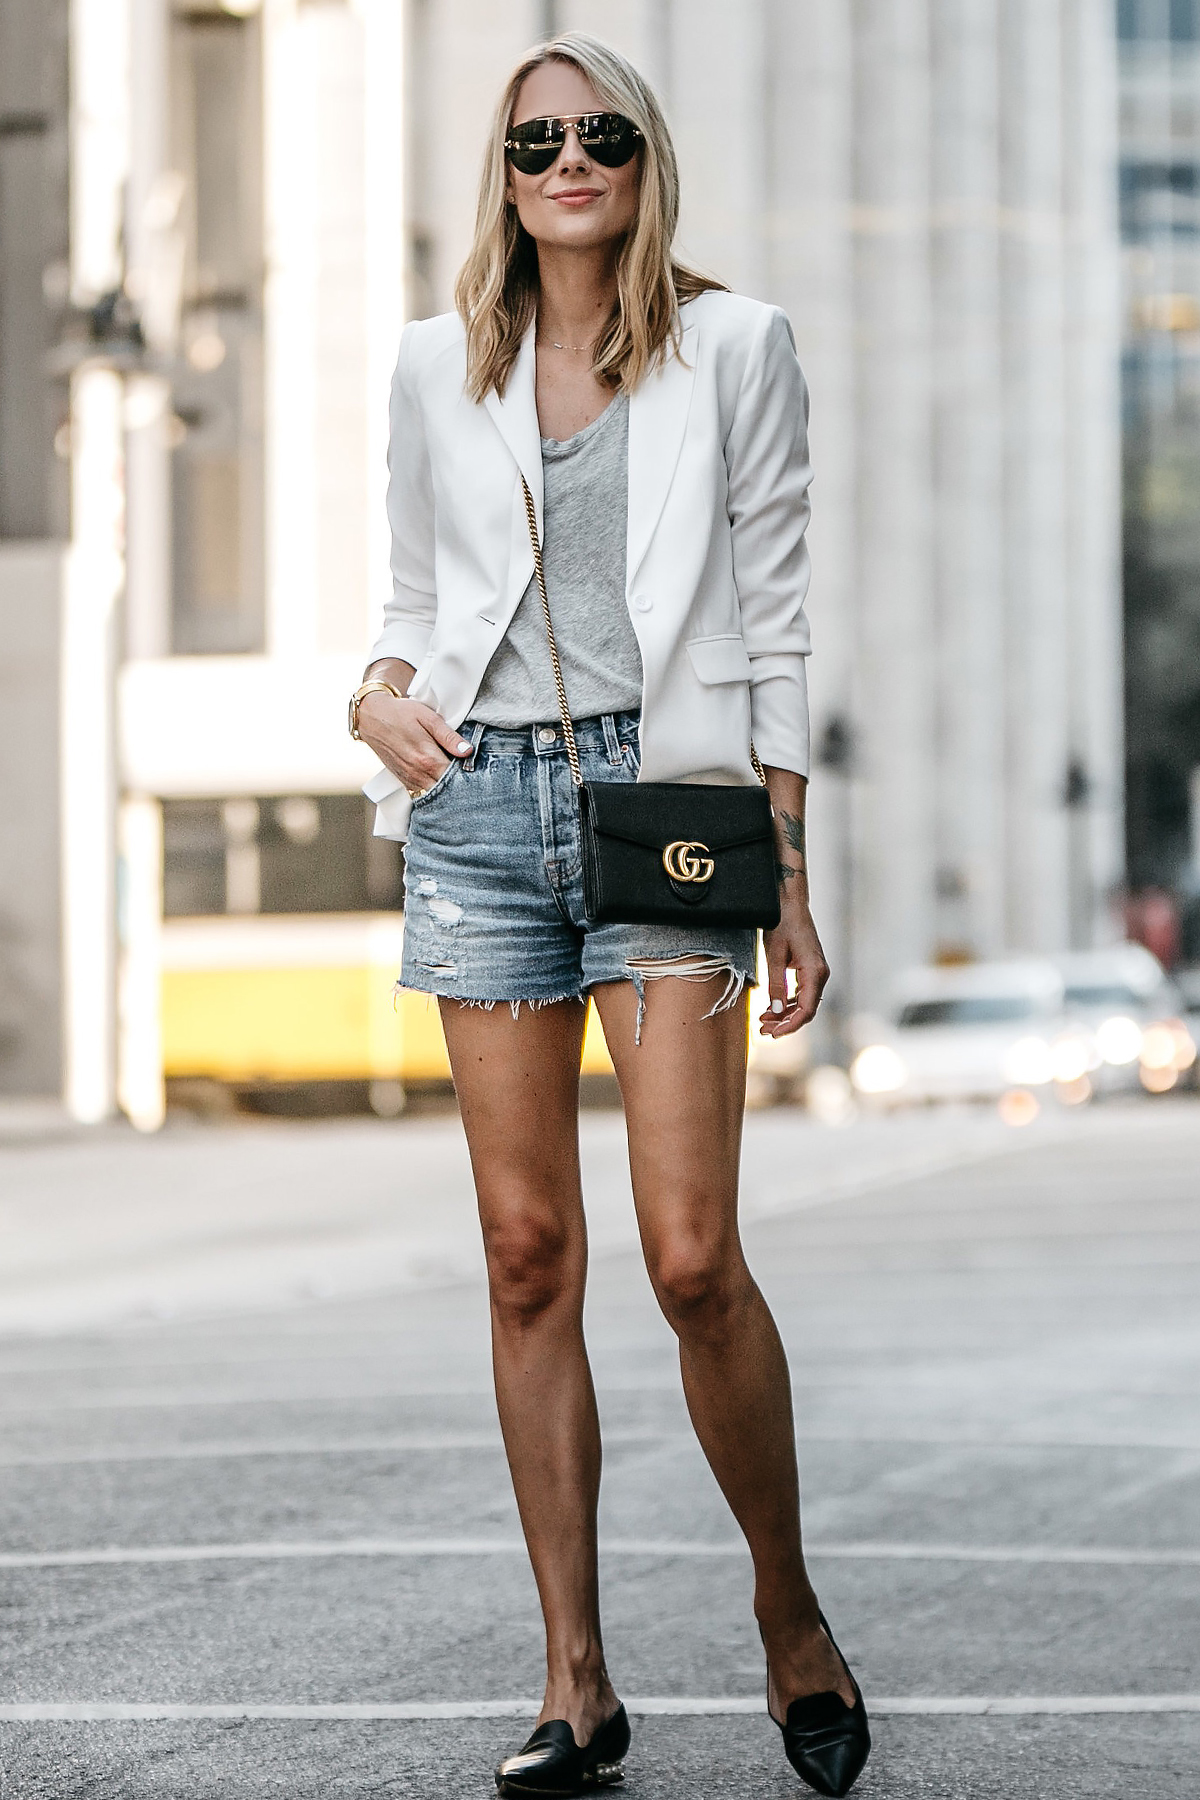 98db016ec83 Blonde Woman Wearing Nordstrom White Blazer Everlane Grey Tshirt Topshop  Ripped Denim Shorts Outfit Gucci Marmont